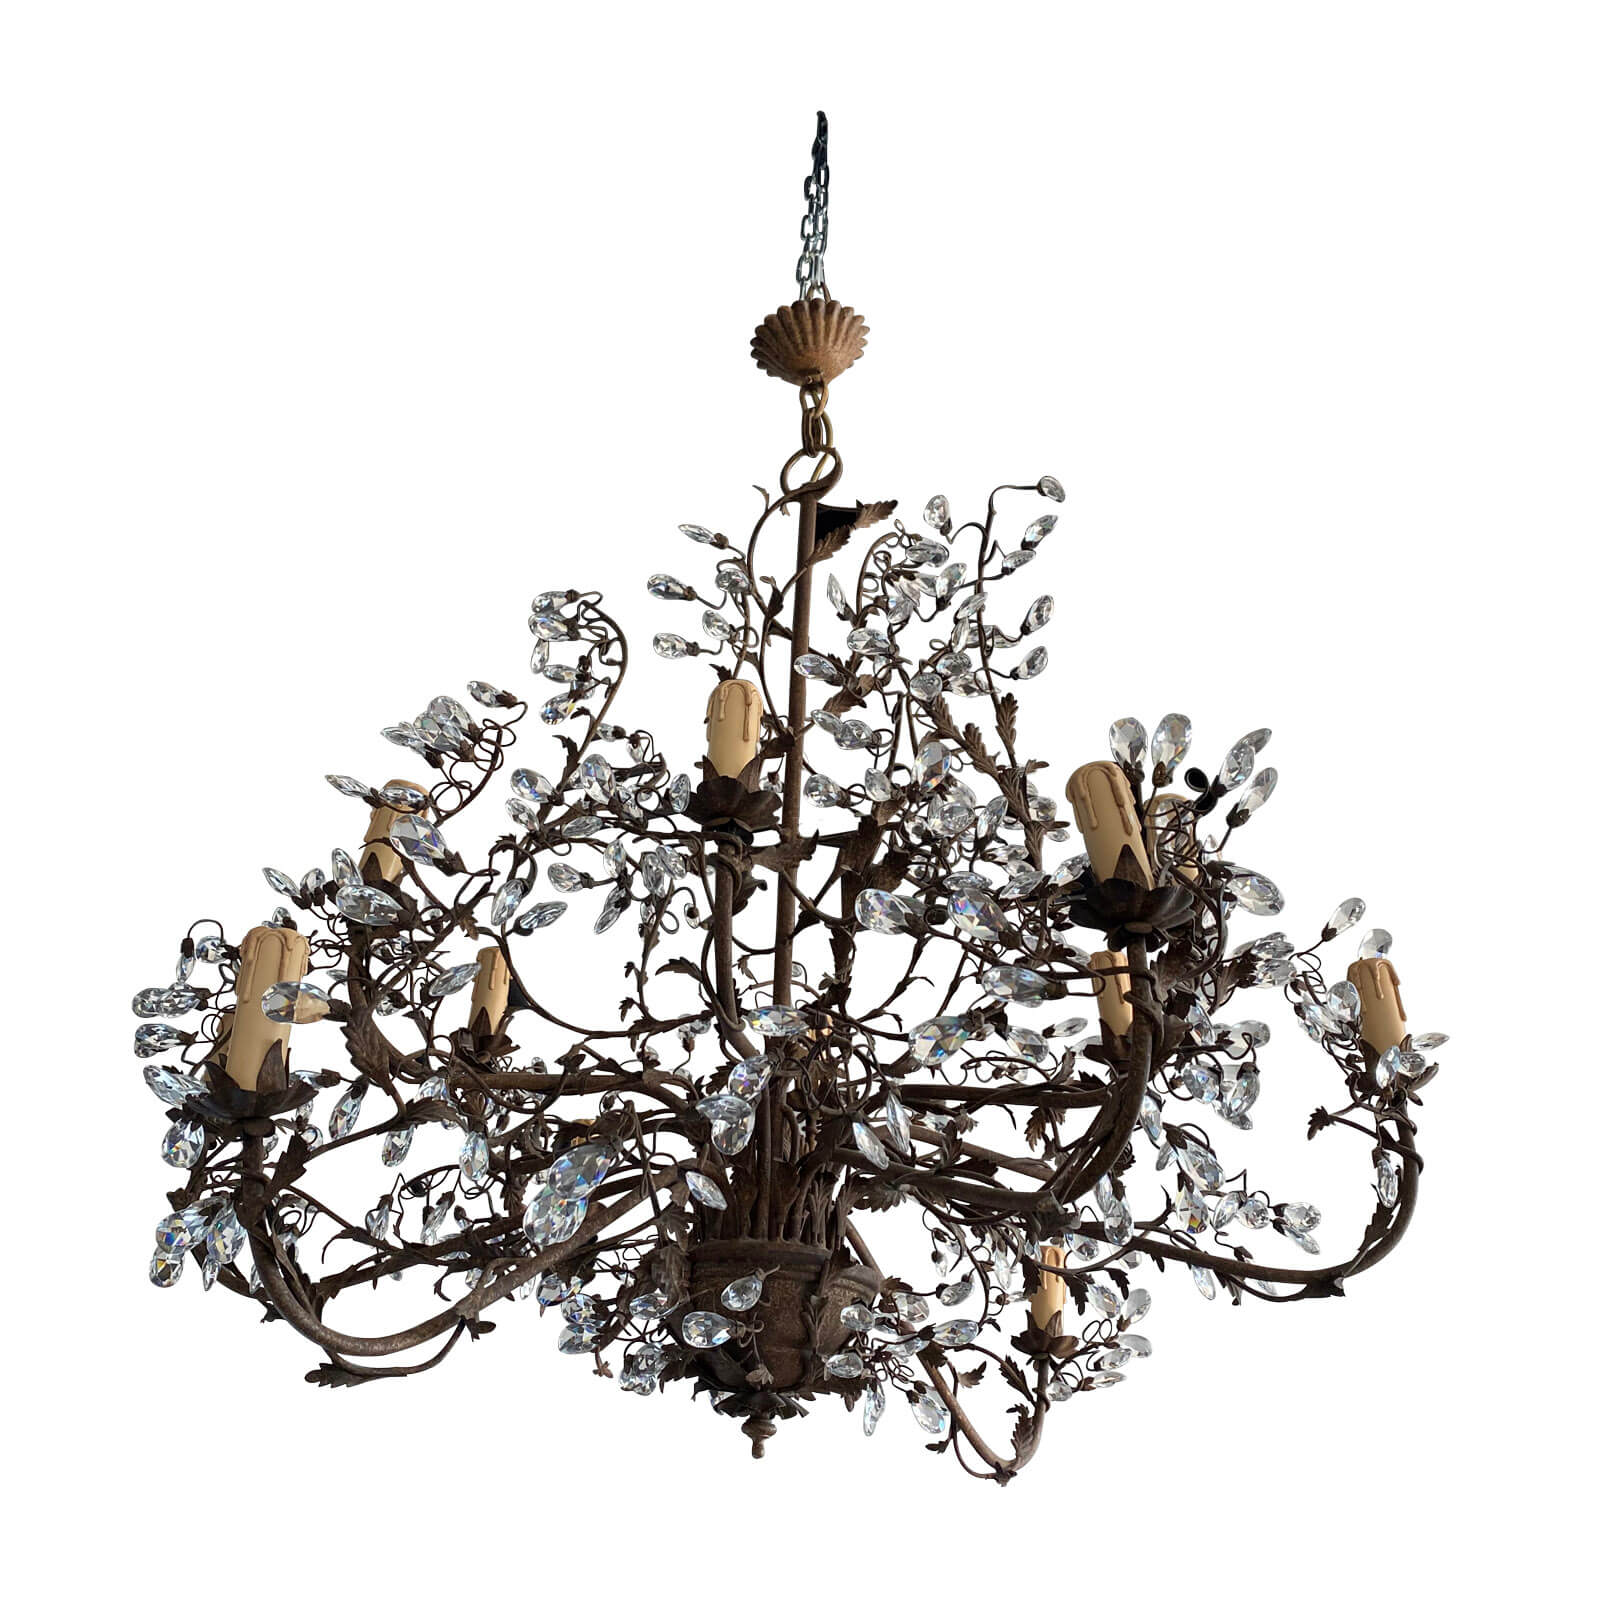 Parterre Antique French wrought Iron and crystal chandelier